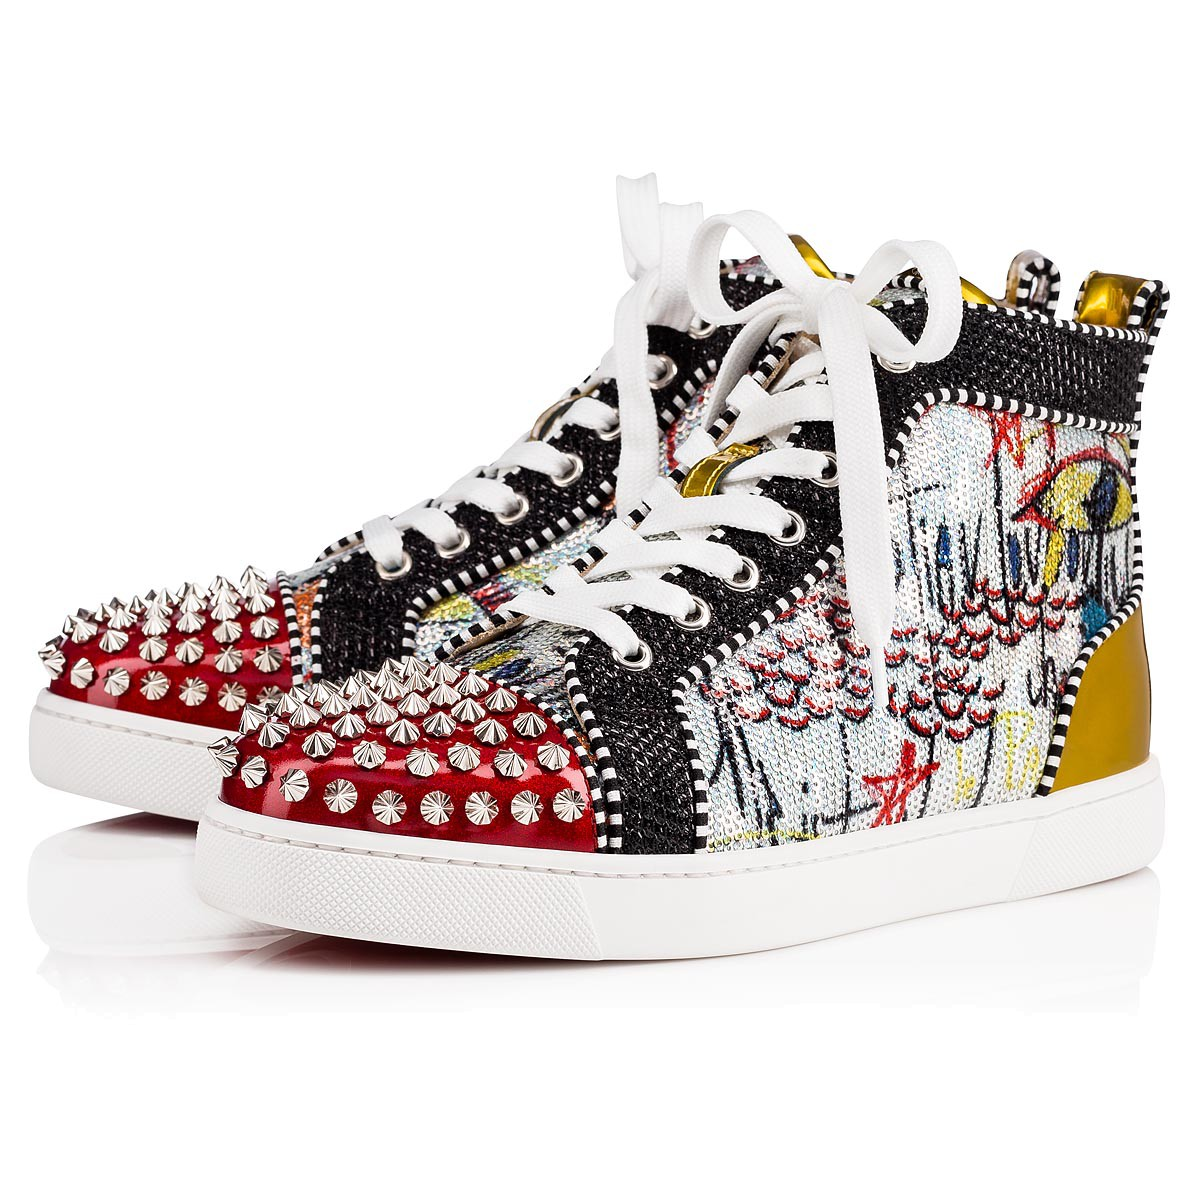 65bb81a2d893 ... greece christian louboutin high top silver spikes men shoes lou spikes  woman flat item no 773365